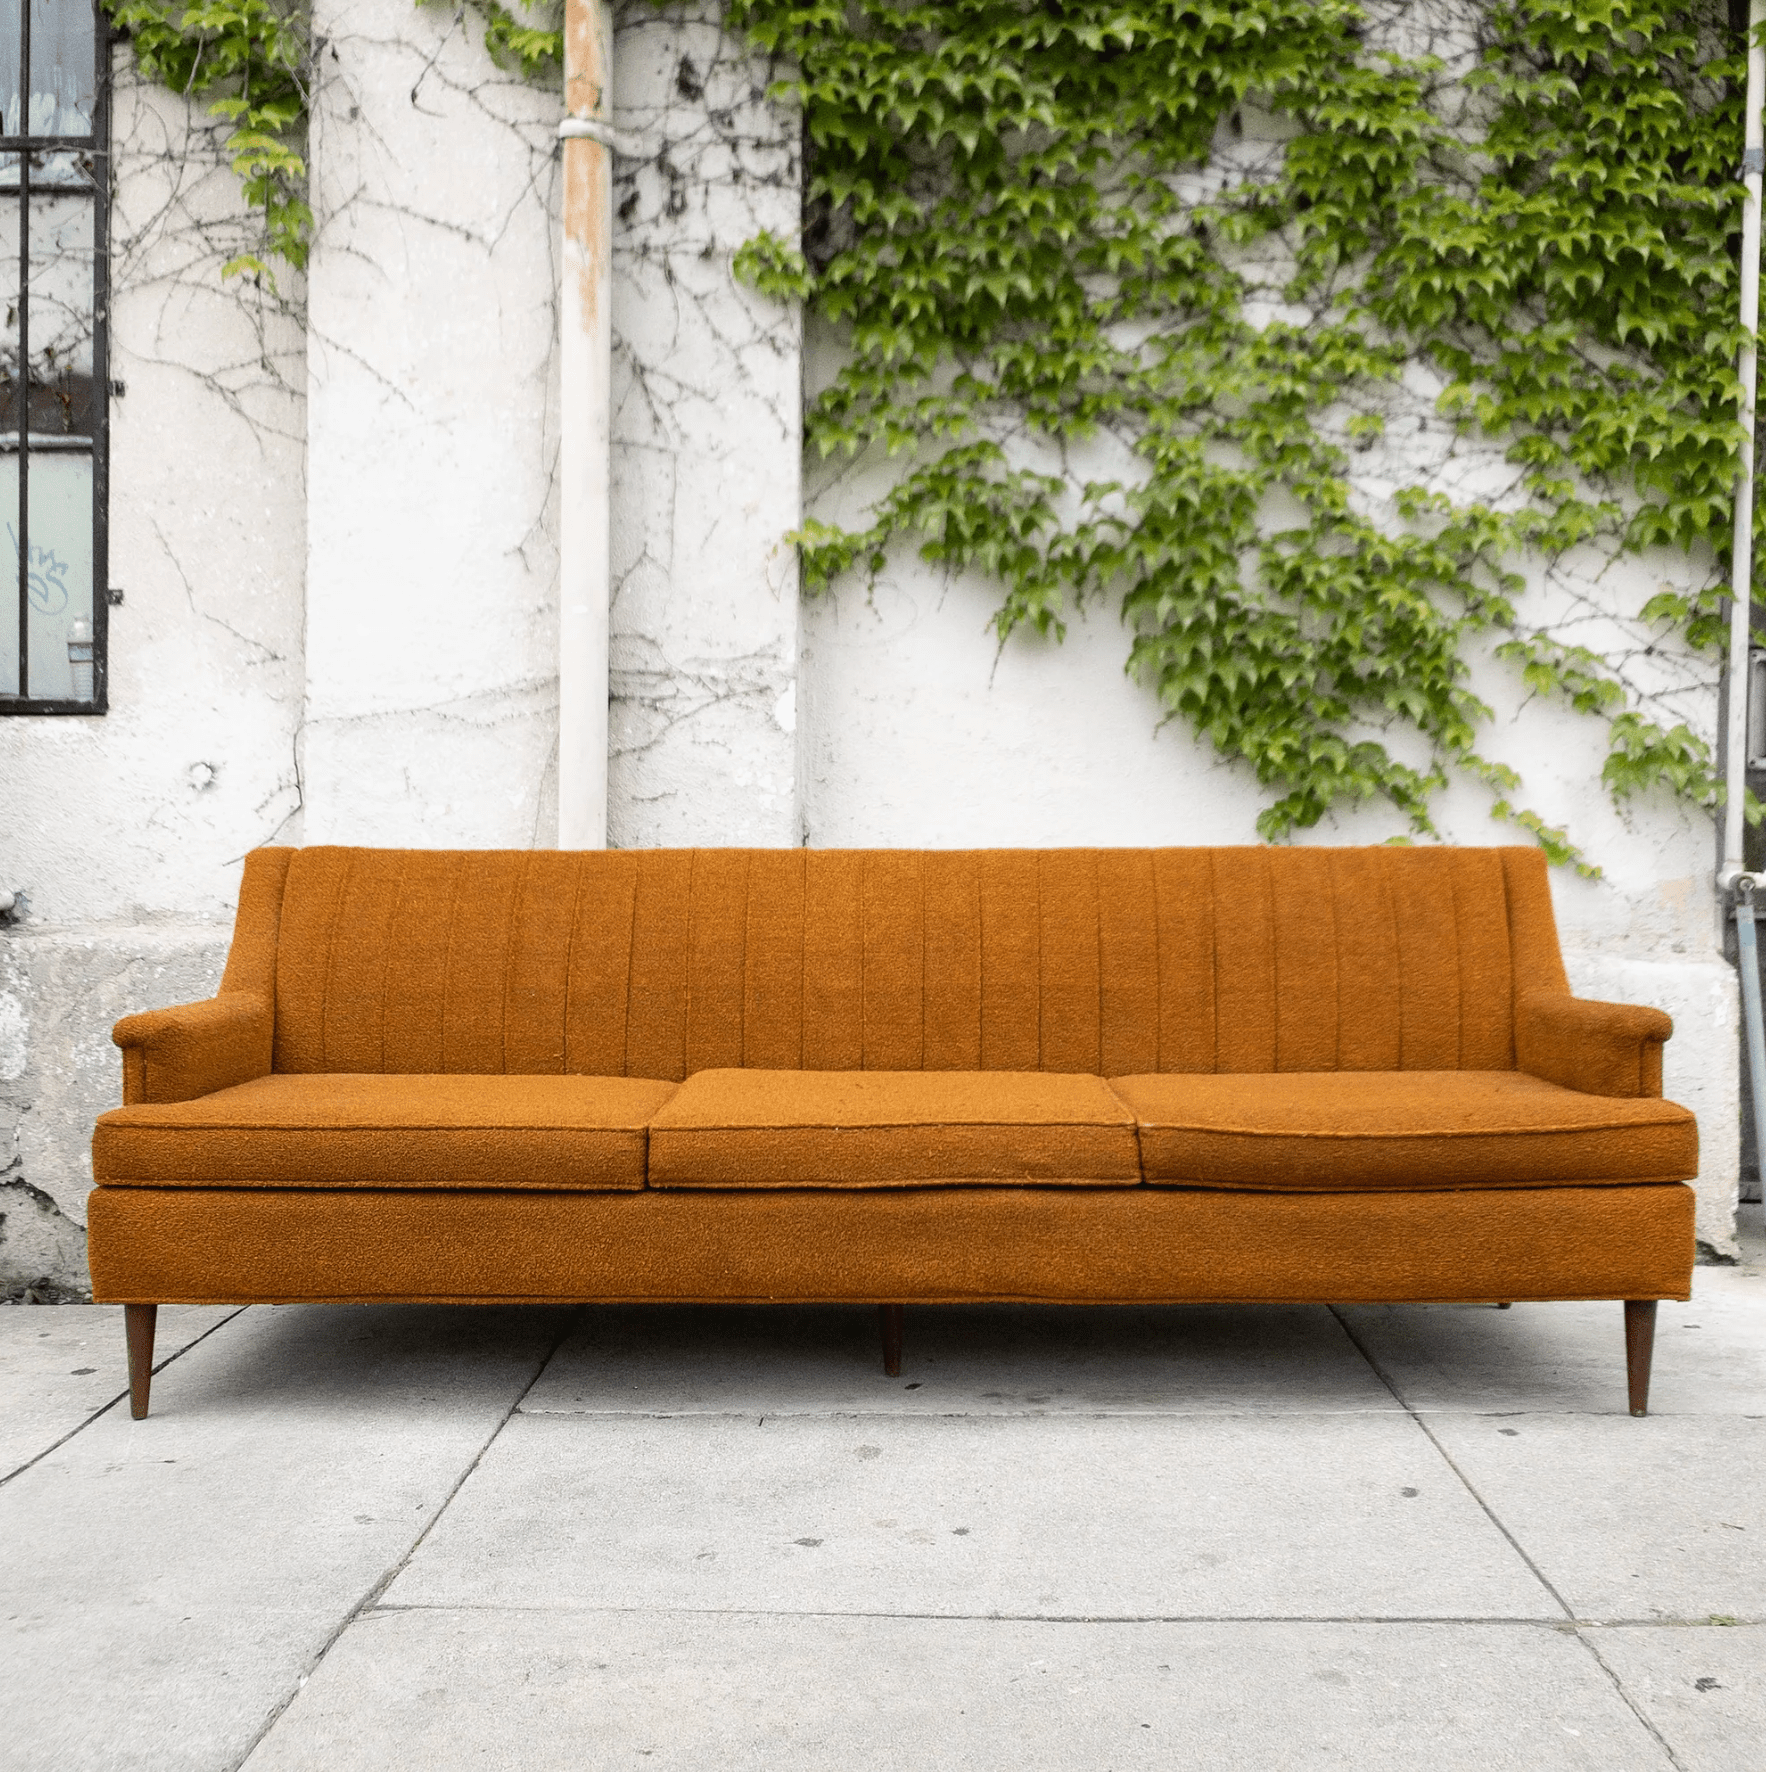 Sunbeam Vintage Original 1960s Vintage Burnt Orange Sofa